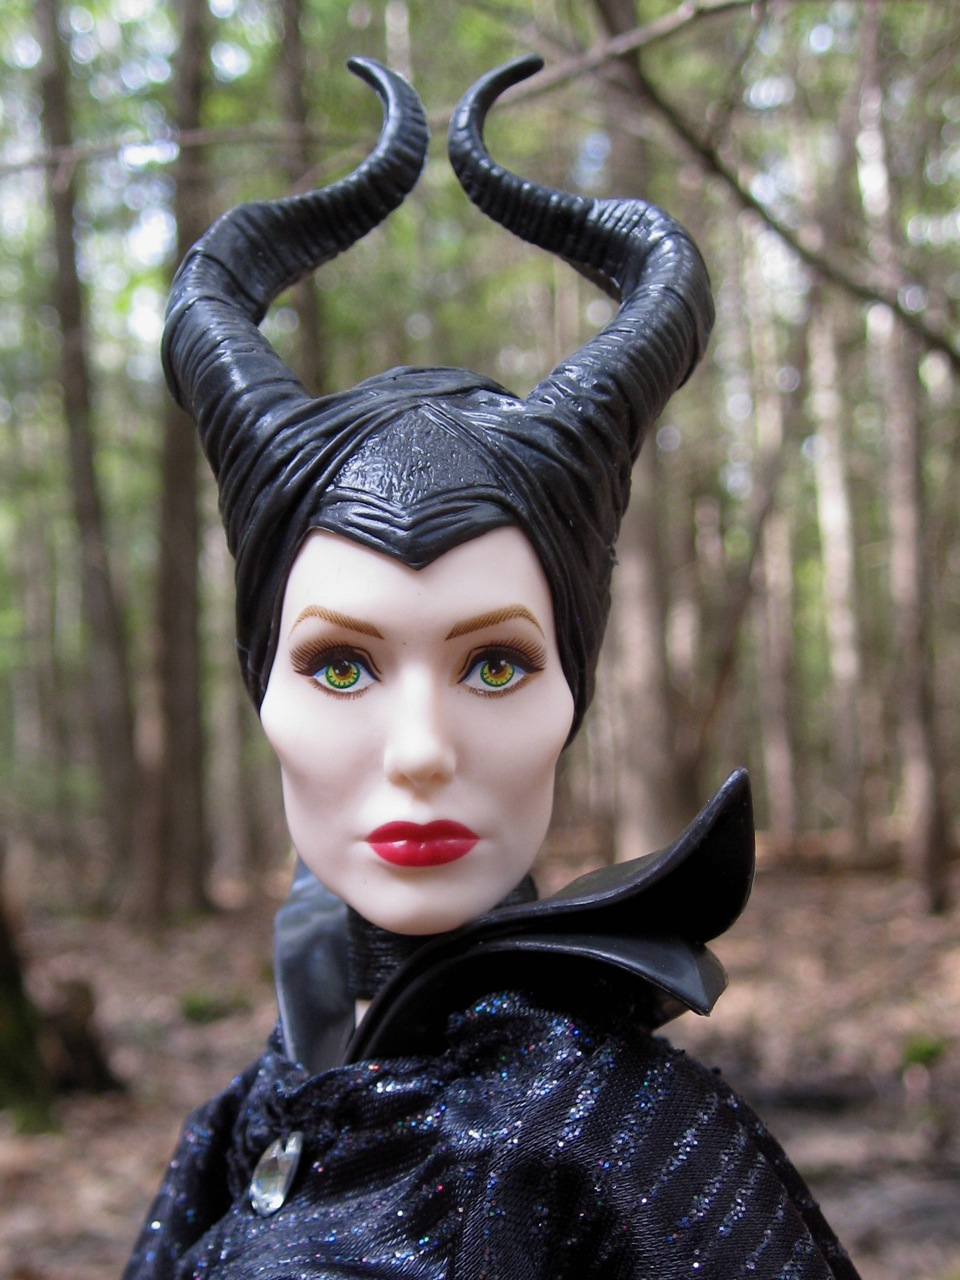 Jakks Pacific Maleficent